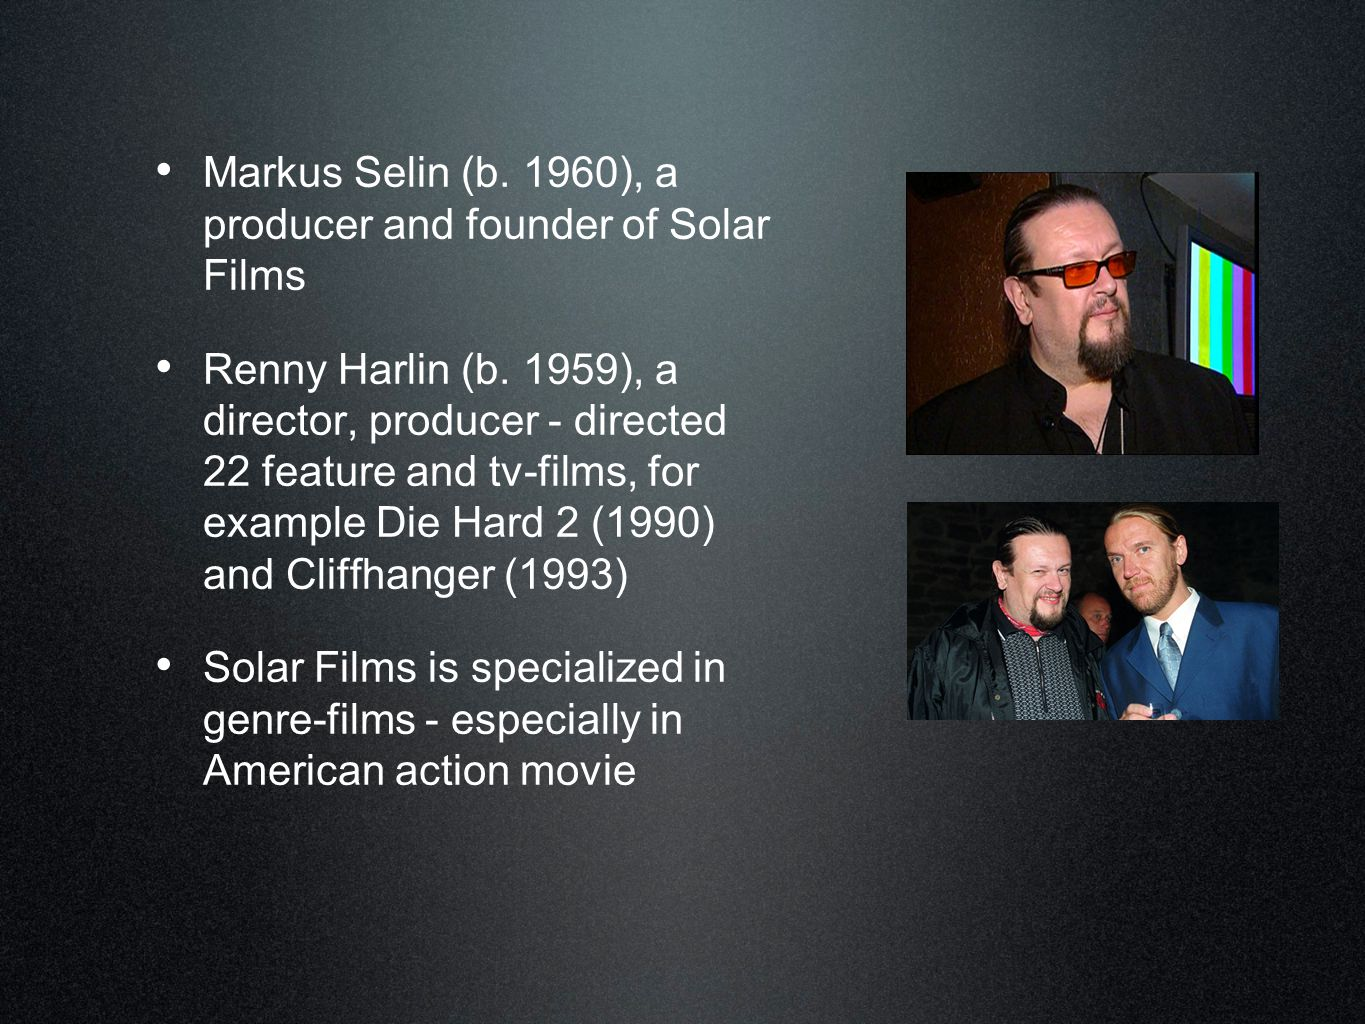 • Markus Selin (b. 1960), a producer and founder of Solar Films • Renny Harlin (b. 1959), a director, producer - directed 22 feature and tv-films, for